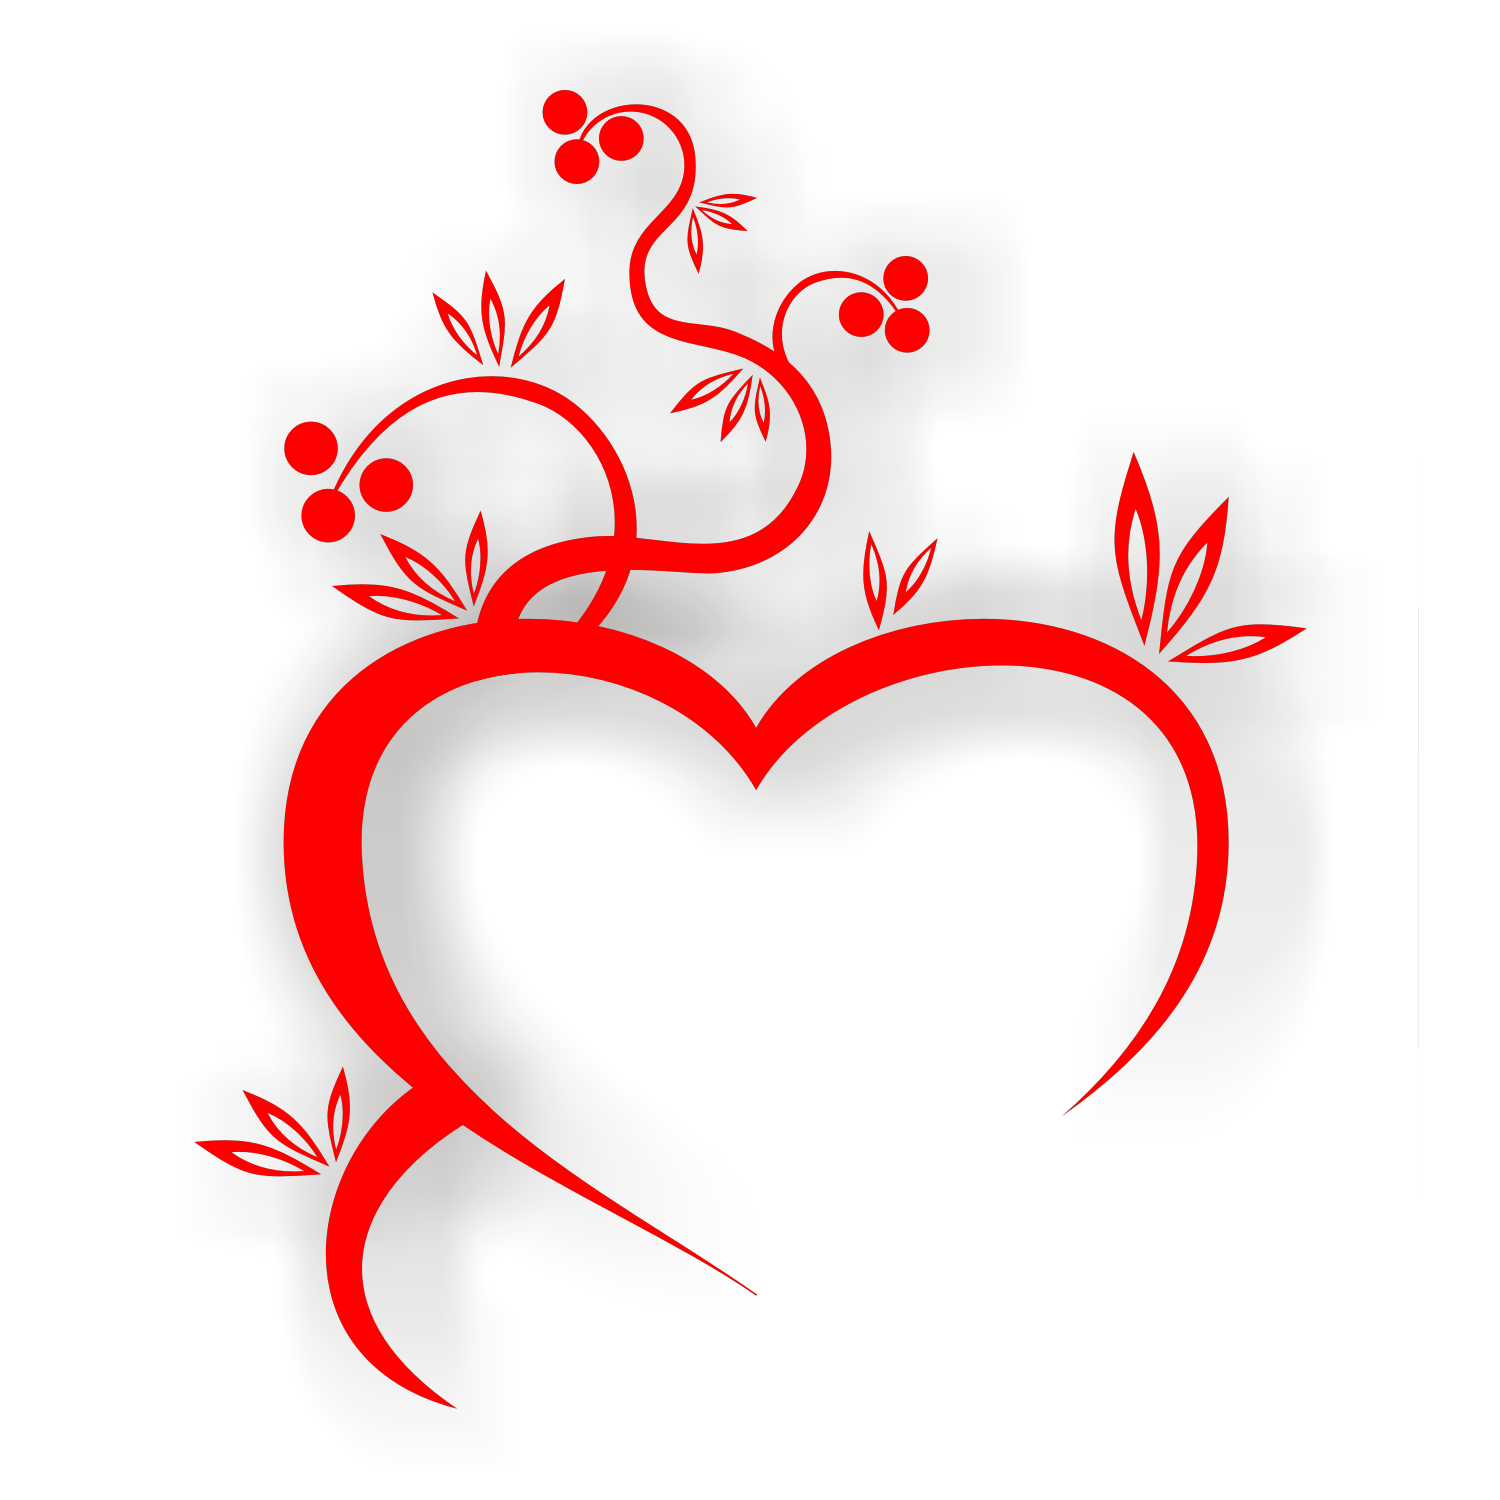 Heart Vector Art - Cliparts.co